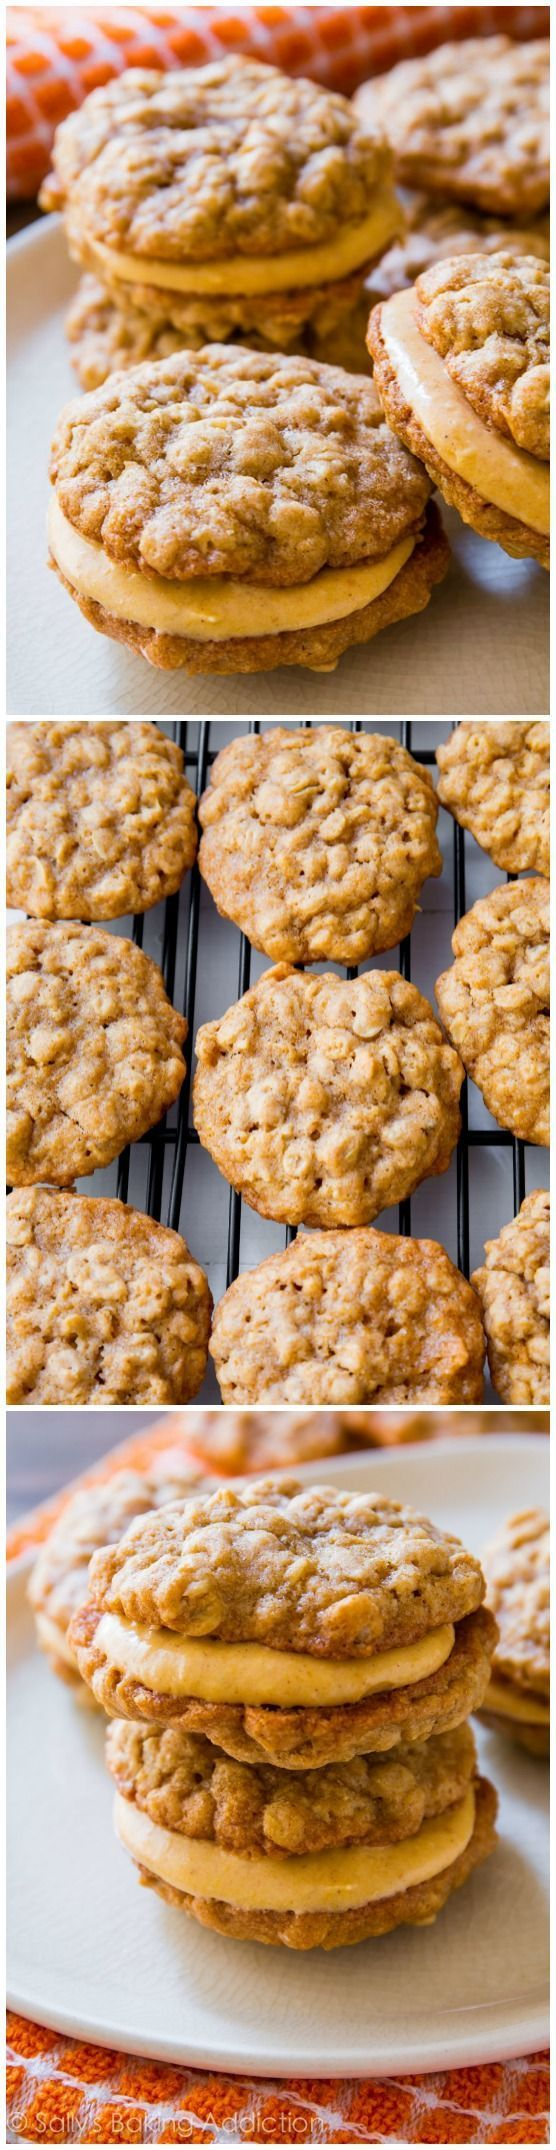 These Oatmeal Pumpkin Creme Pies are amazing any time of year! Soft, chewy, and so much sweet pumpkin and cinnamon flavors! Recipe on sallysbakingaddiction.com